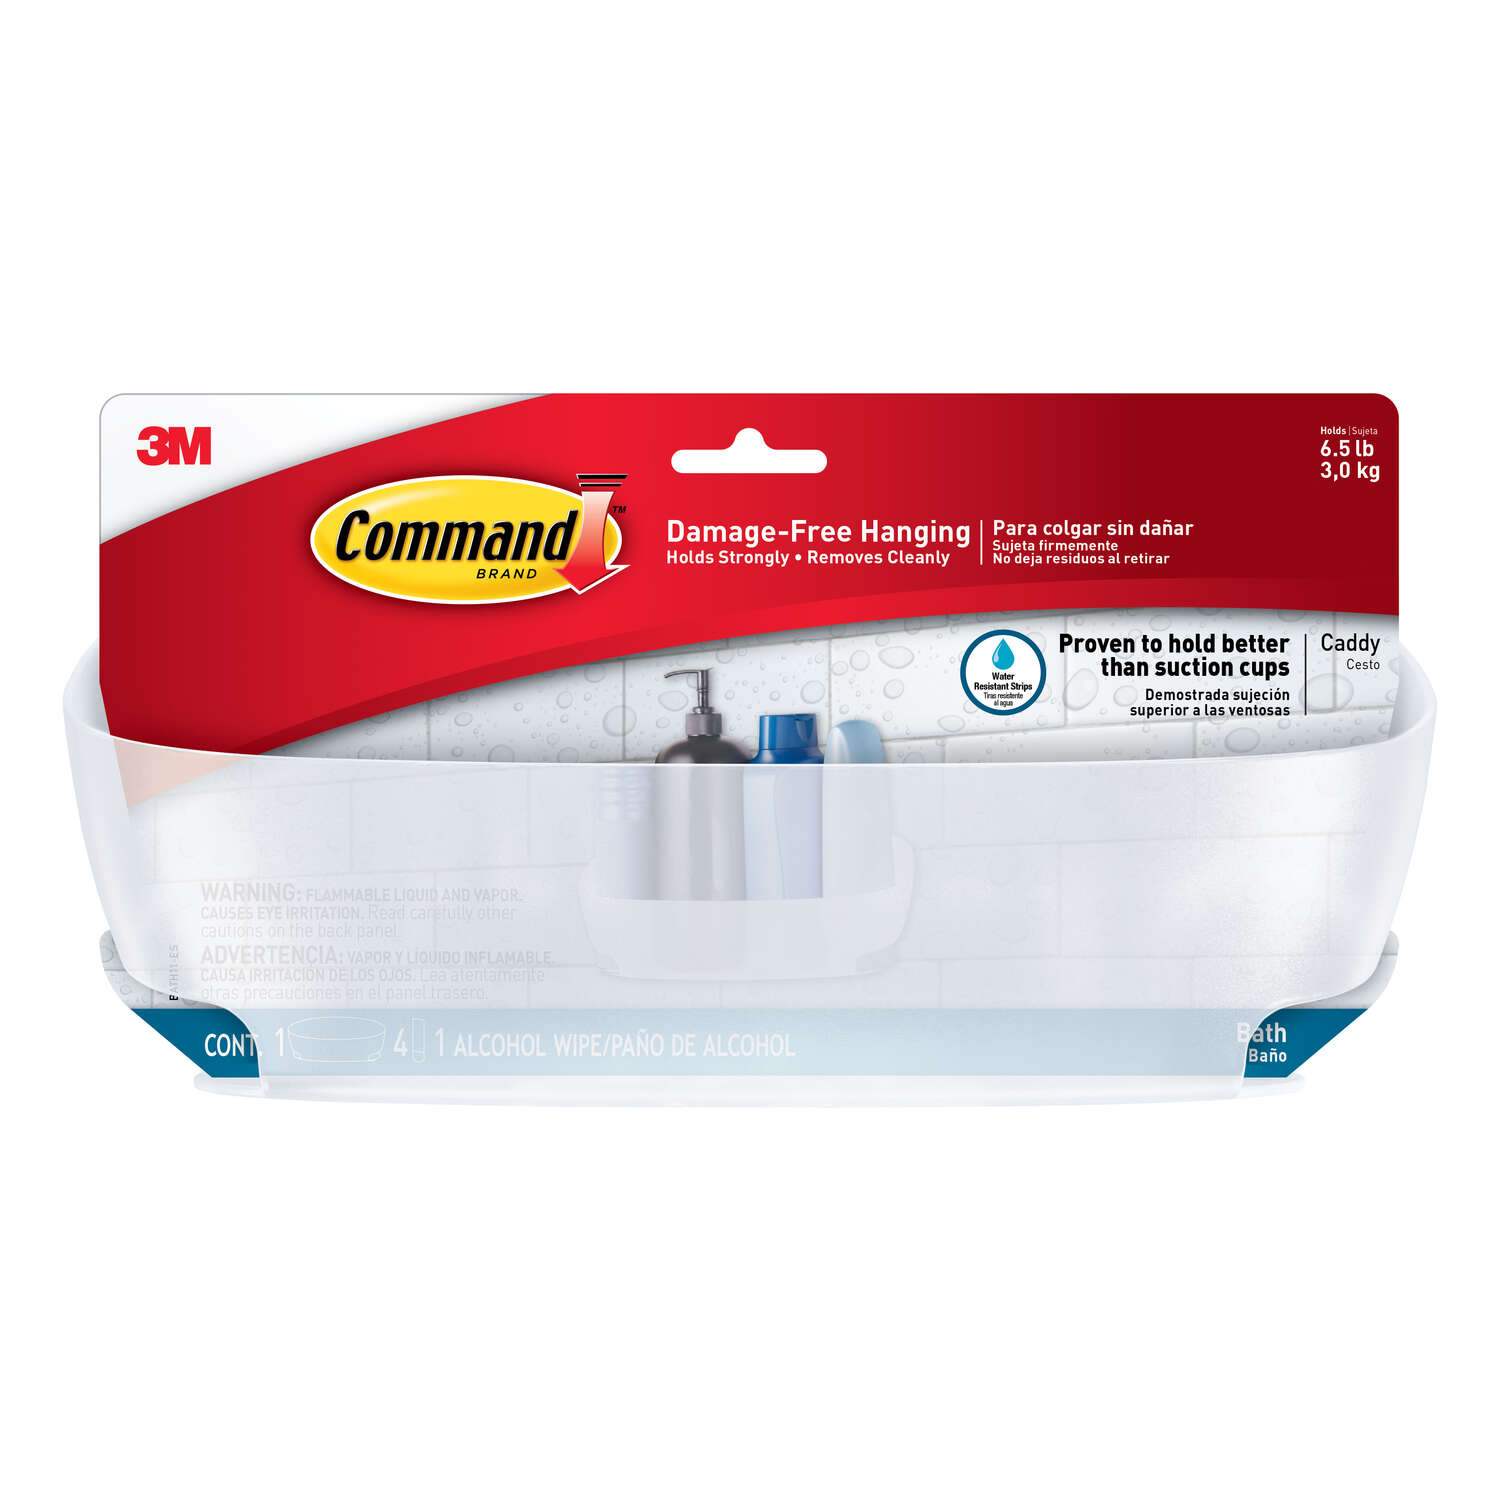 3M Command 4.75 in. H x 4.625 in. W x 11.375 in. L Clear Frosted Shower Caddy